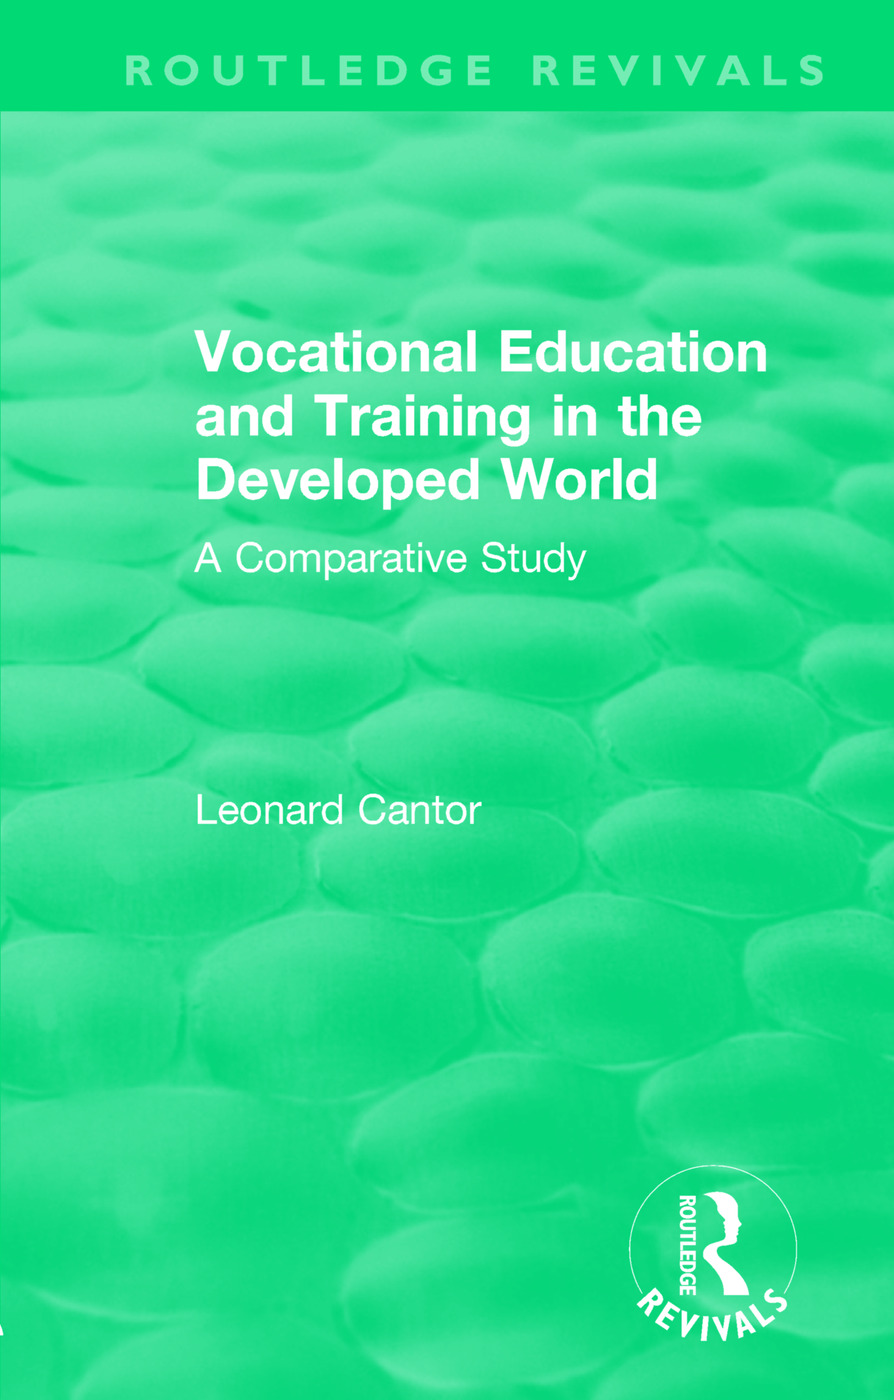 Routledge Revivals: Vocational Education and Training in the Developed World (1979): A Comparative Study book cover